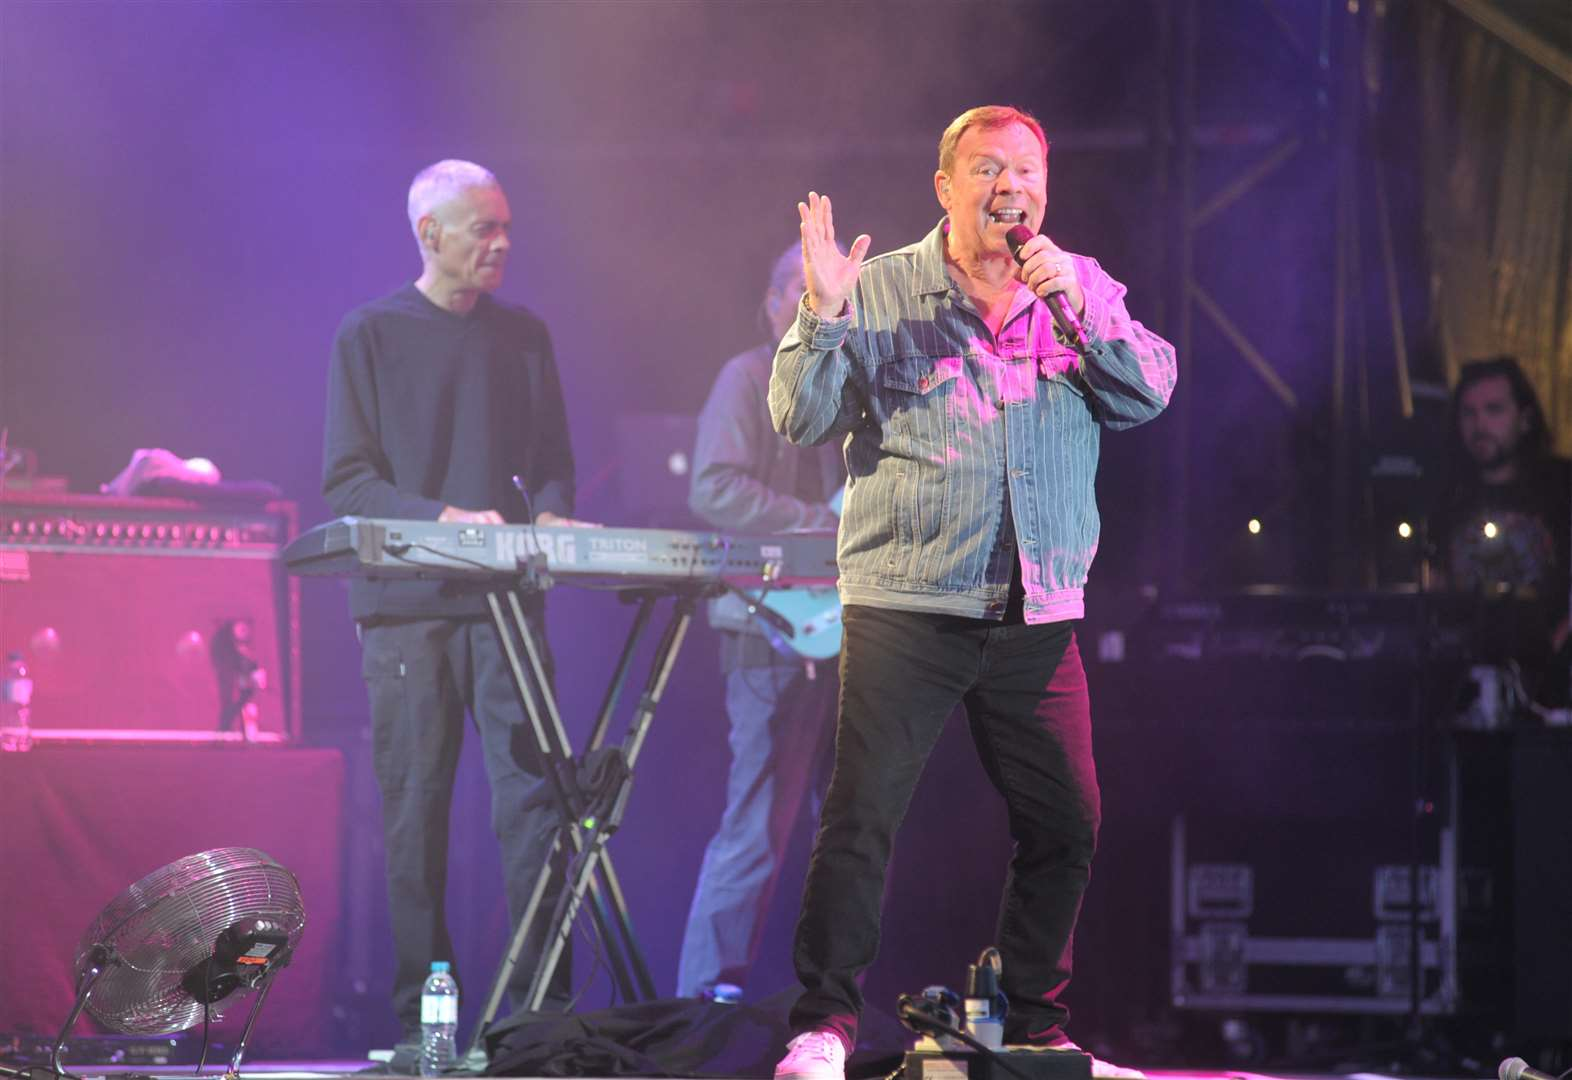 UB40 featuring Ali, Astro and Mickey at castle concerts